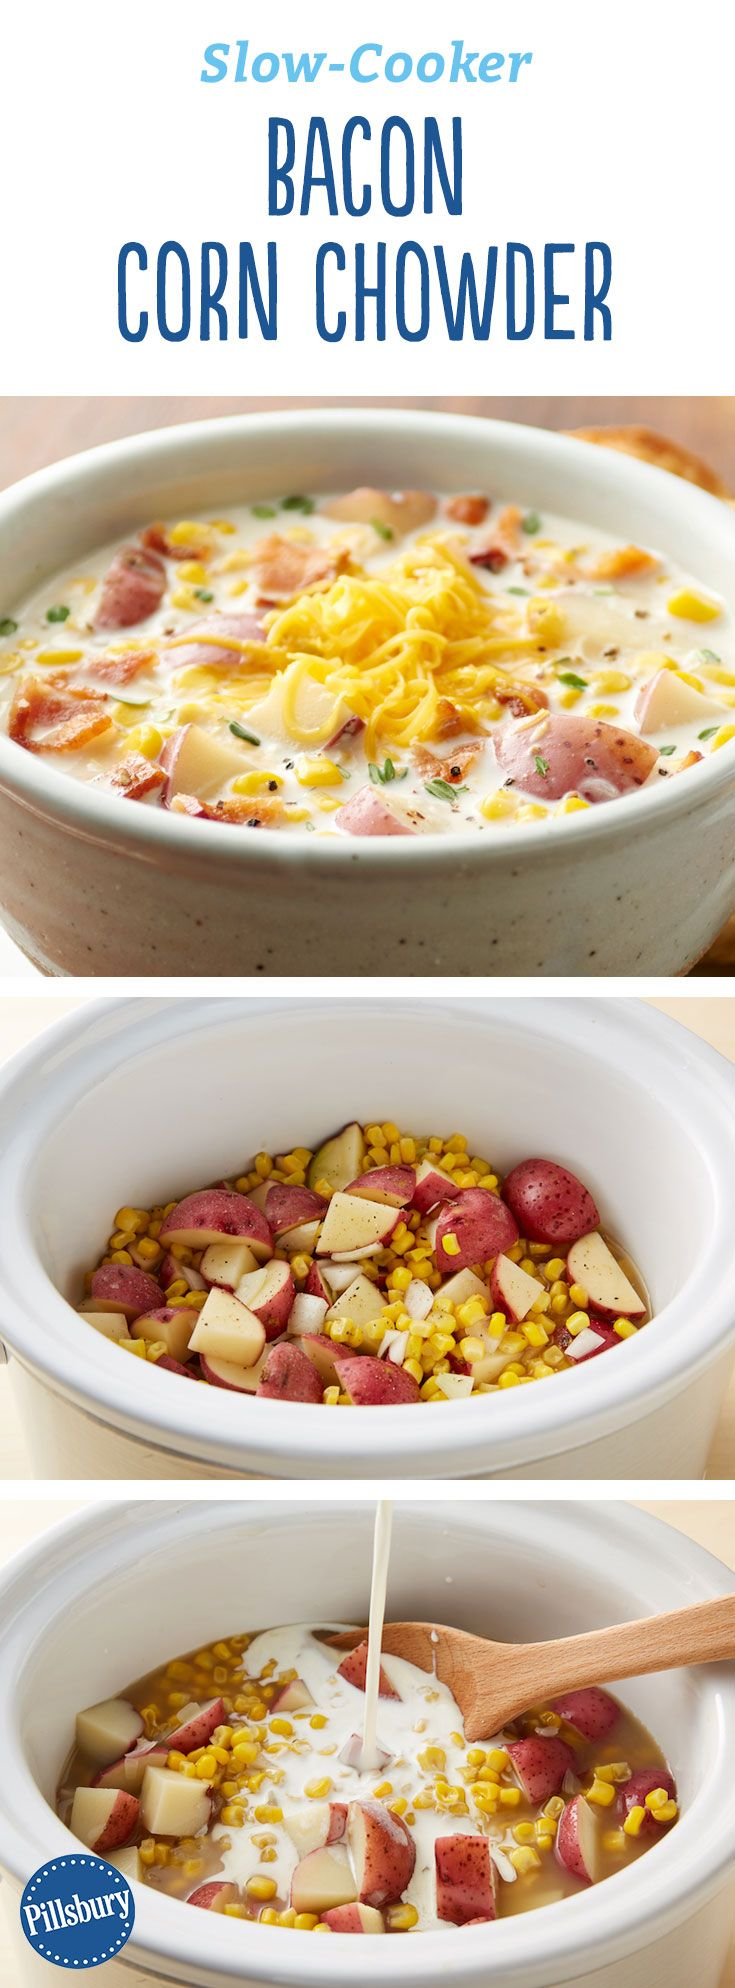 Slow-Cooker Bacon Corn Chowder: Hearty and creamy, this classic corn and potato soup gets extra oomph from our favorite ingredient -- bacon. It only takes a few minutes to pull together, and then the slow cooker will do all the work. (Vegan Potato Soup)